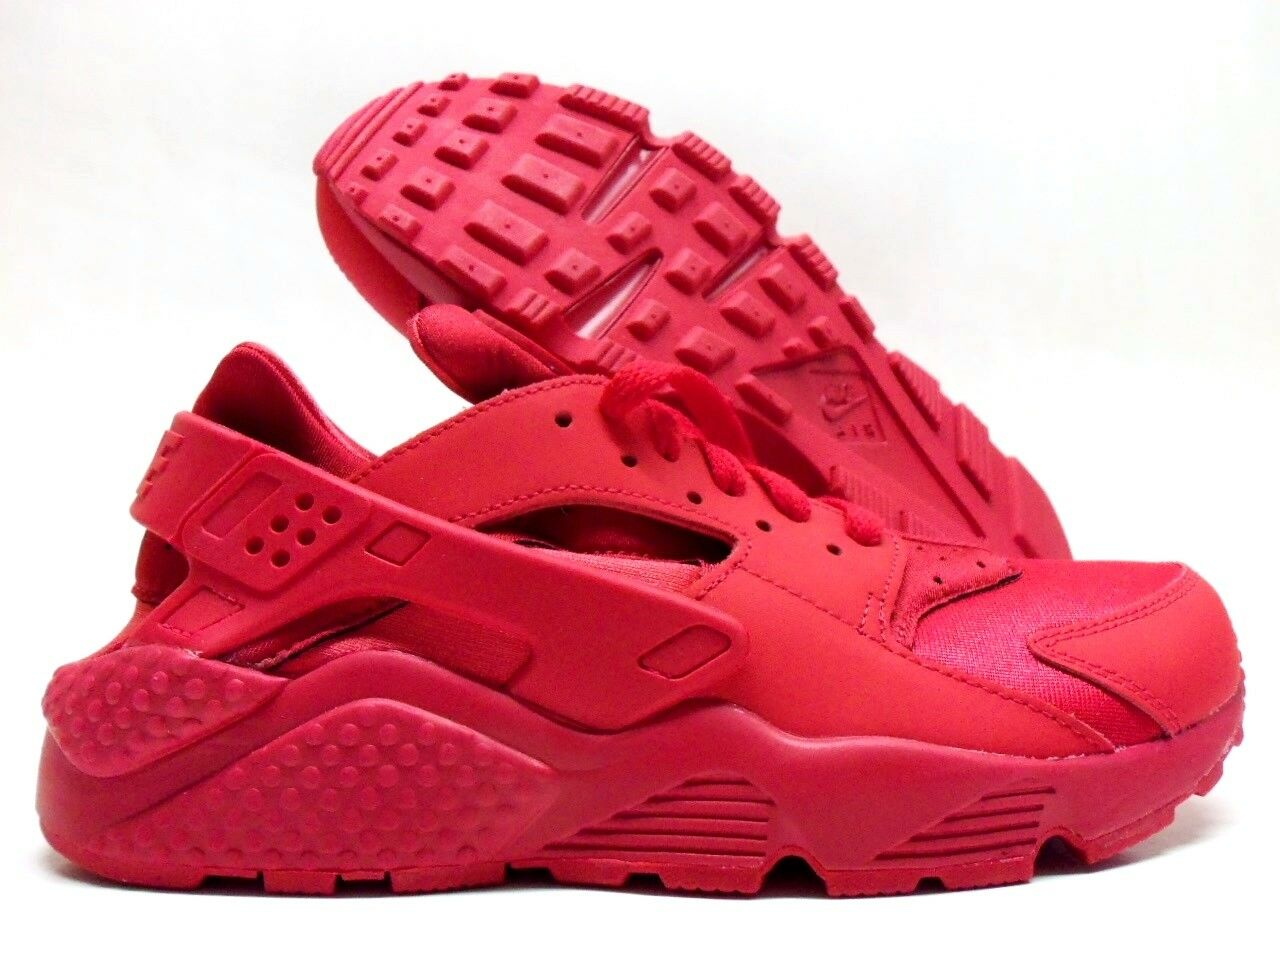 NIKE AIR HUARACHE ID  RED OCTOBER  SPORT RED SIZE WOMEN'S 6.5 [777331-972]